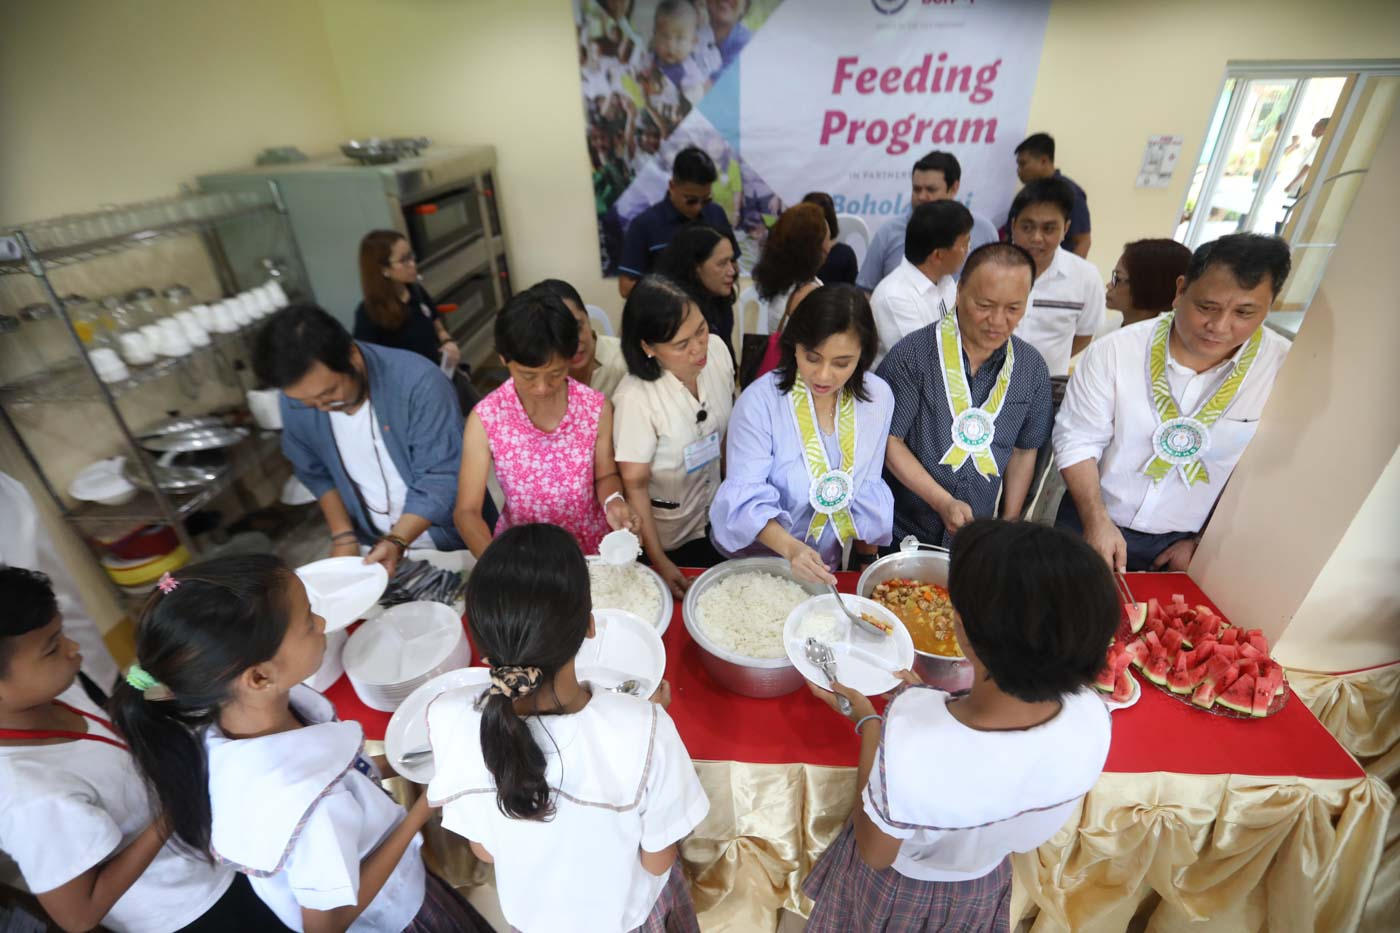 LIVELIHOOD ASSISTANCE. Vice President Leni Robredo in August 2018 turns over kitchen tools and equipment to Lourdes National High School in Panglao, Bohol, for its feeding program and vocational course. The assistance is under the OVPu2019s Angat Buhay program.